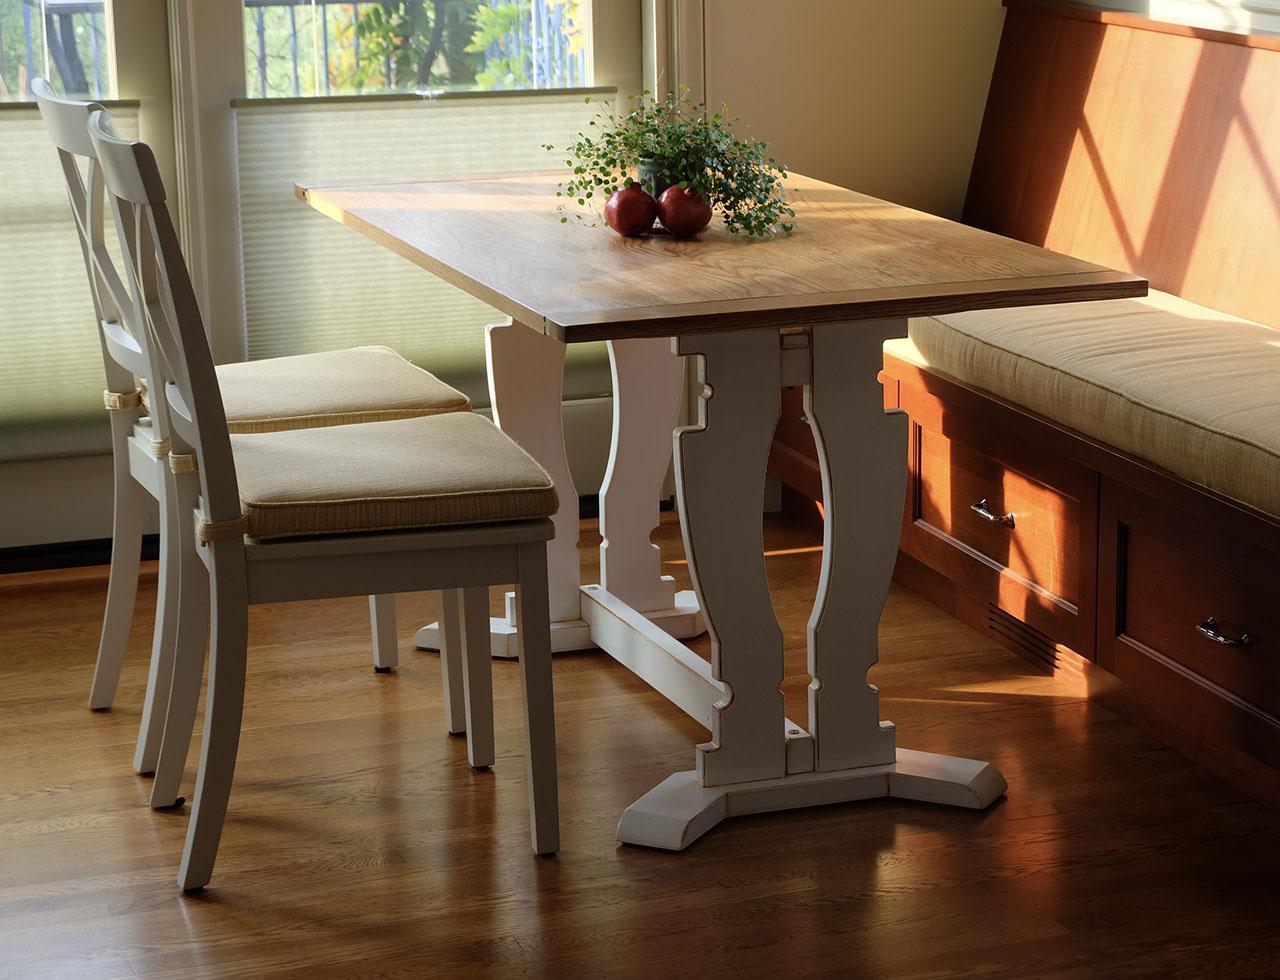 sunlit dining table